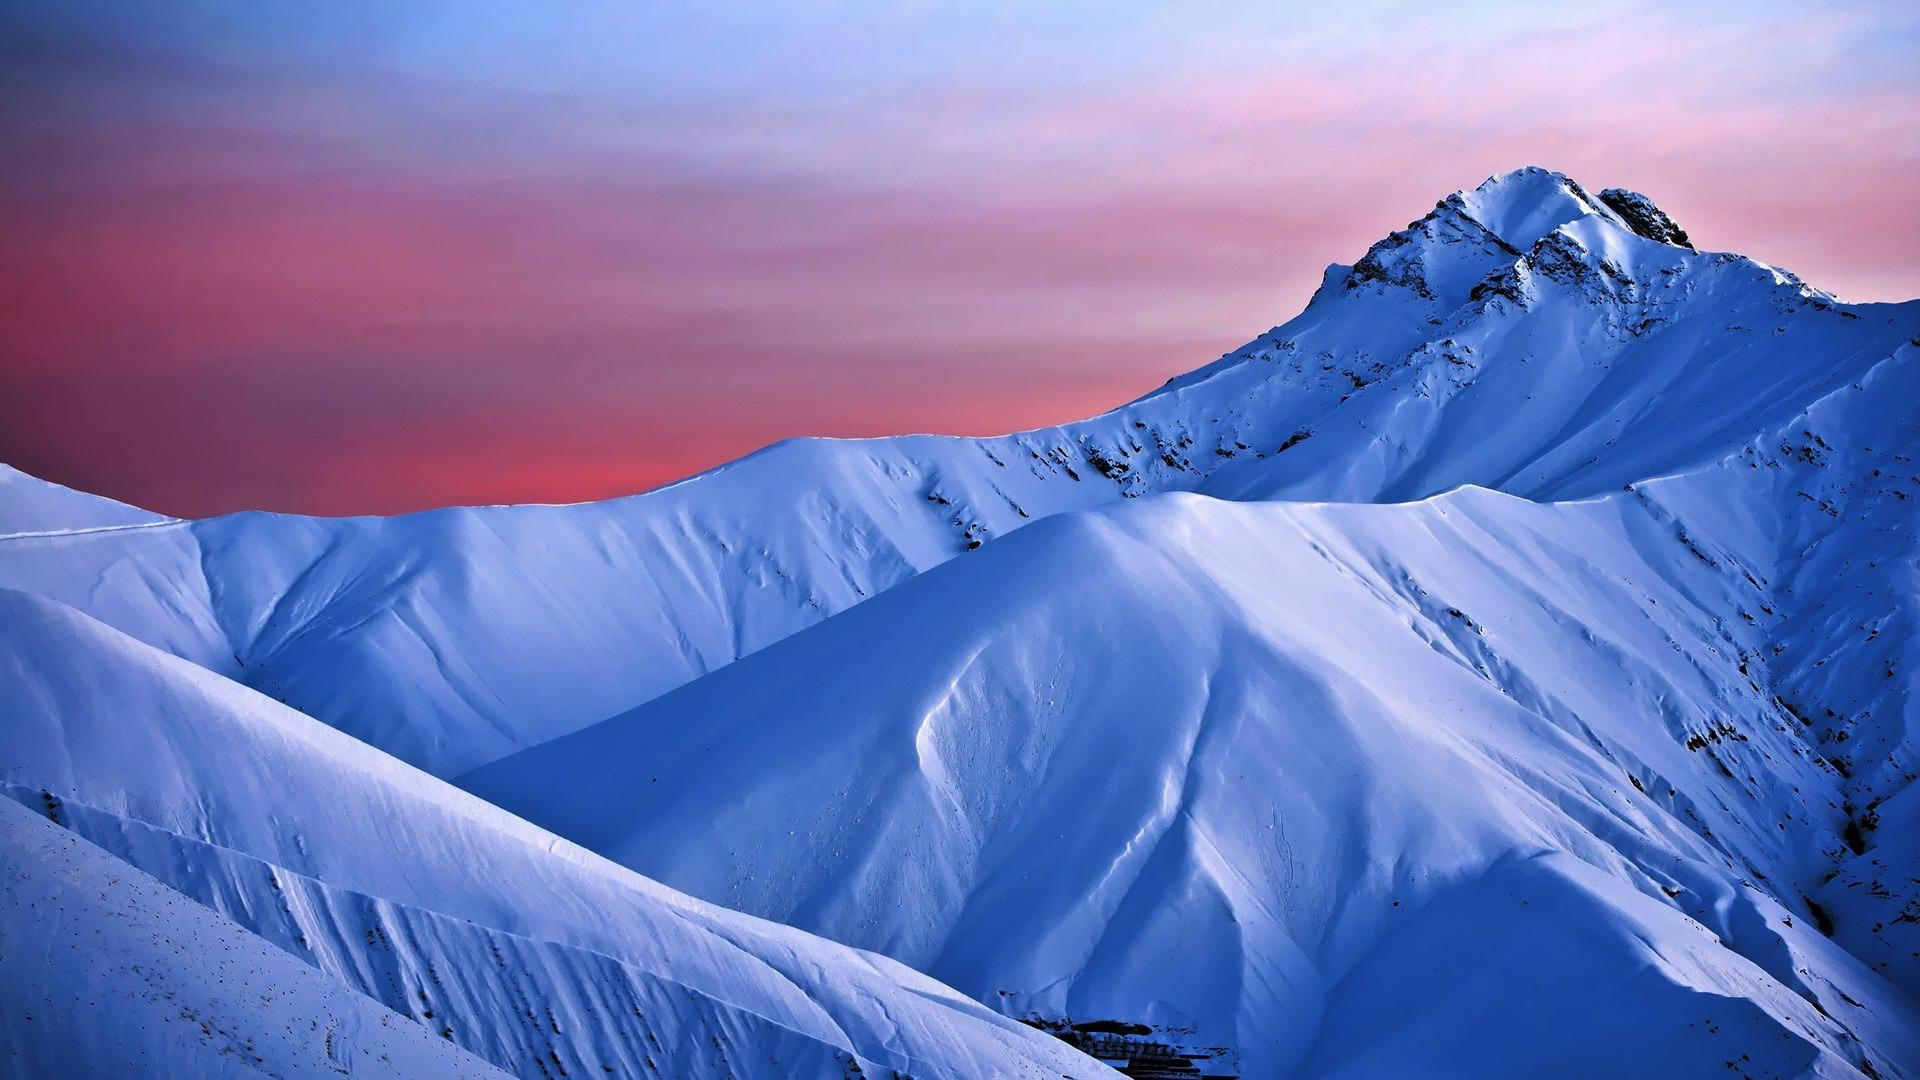 1920x1080 wallpaper.wiki-Snowy-Mountains-HD-Images-PIC-WPE001069